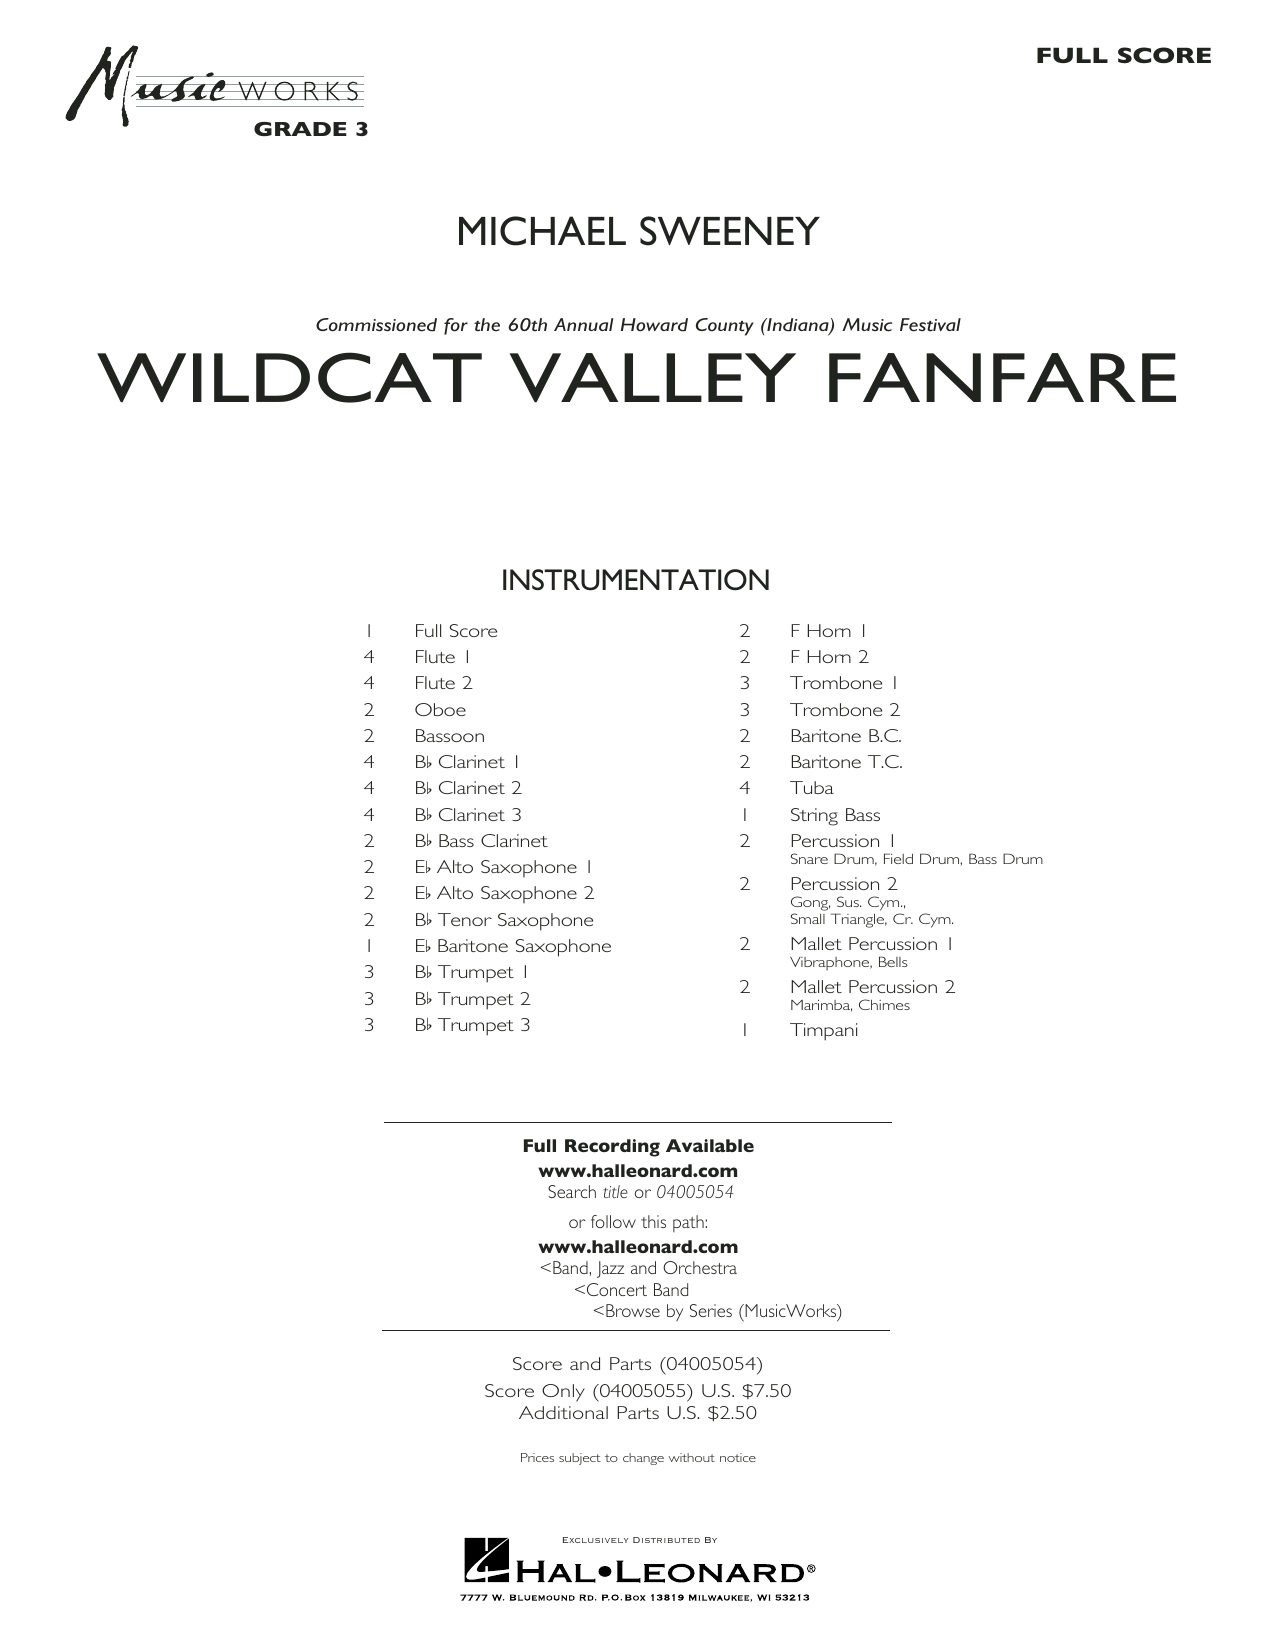 Michael Sweeney Wildcat Valley Fanfare - Conductor Score (Full Score) sheet music preview music notes and score for Concert Band including 20 page(s)